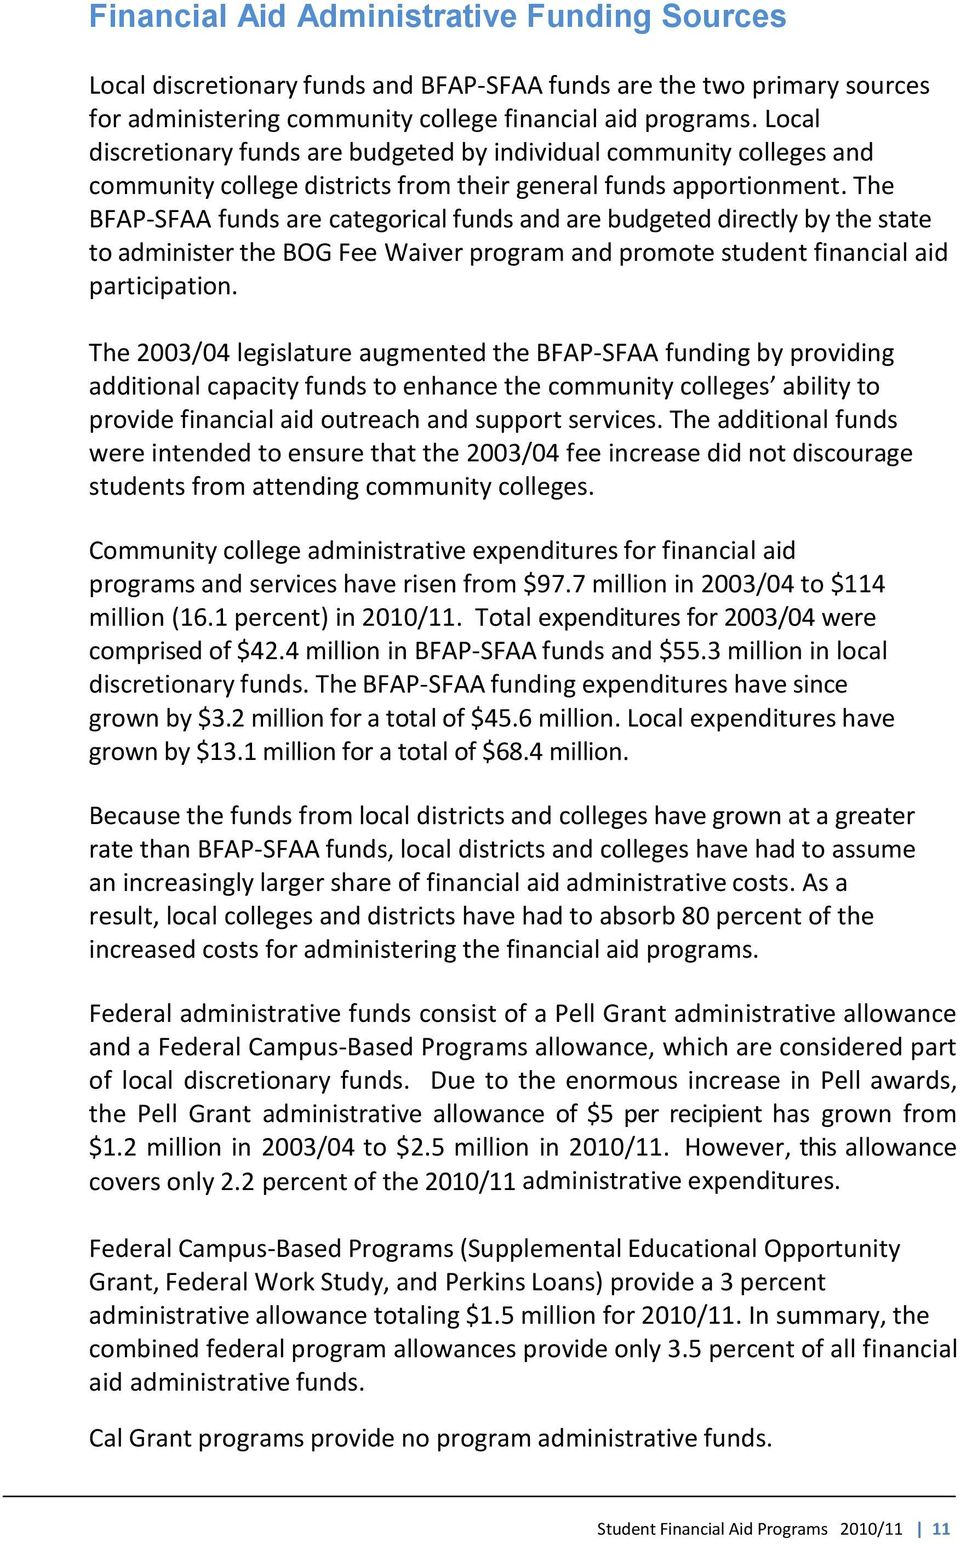 The BFAP-SFAA funds are categorical funds and are budgeted directly by the state to administer the BOG Fee Waiver program and promote student financial aid participation.